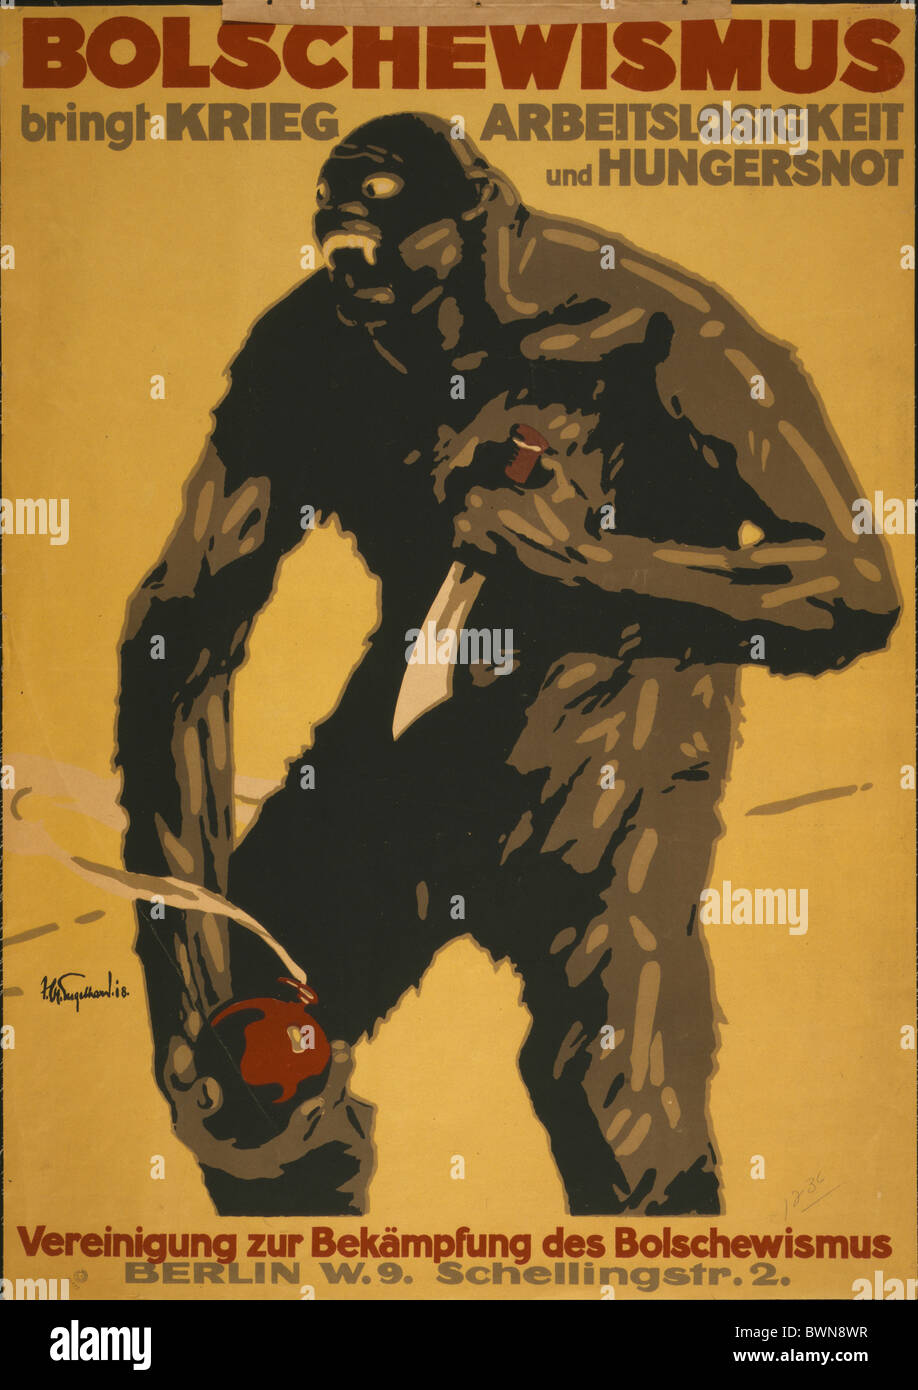 1918 Bolschewism brings war unemployment monster bomb starvation Germany Europe Berlin history historical h - Stock Image